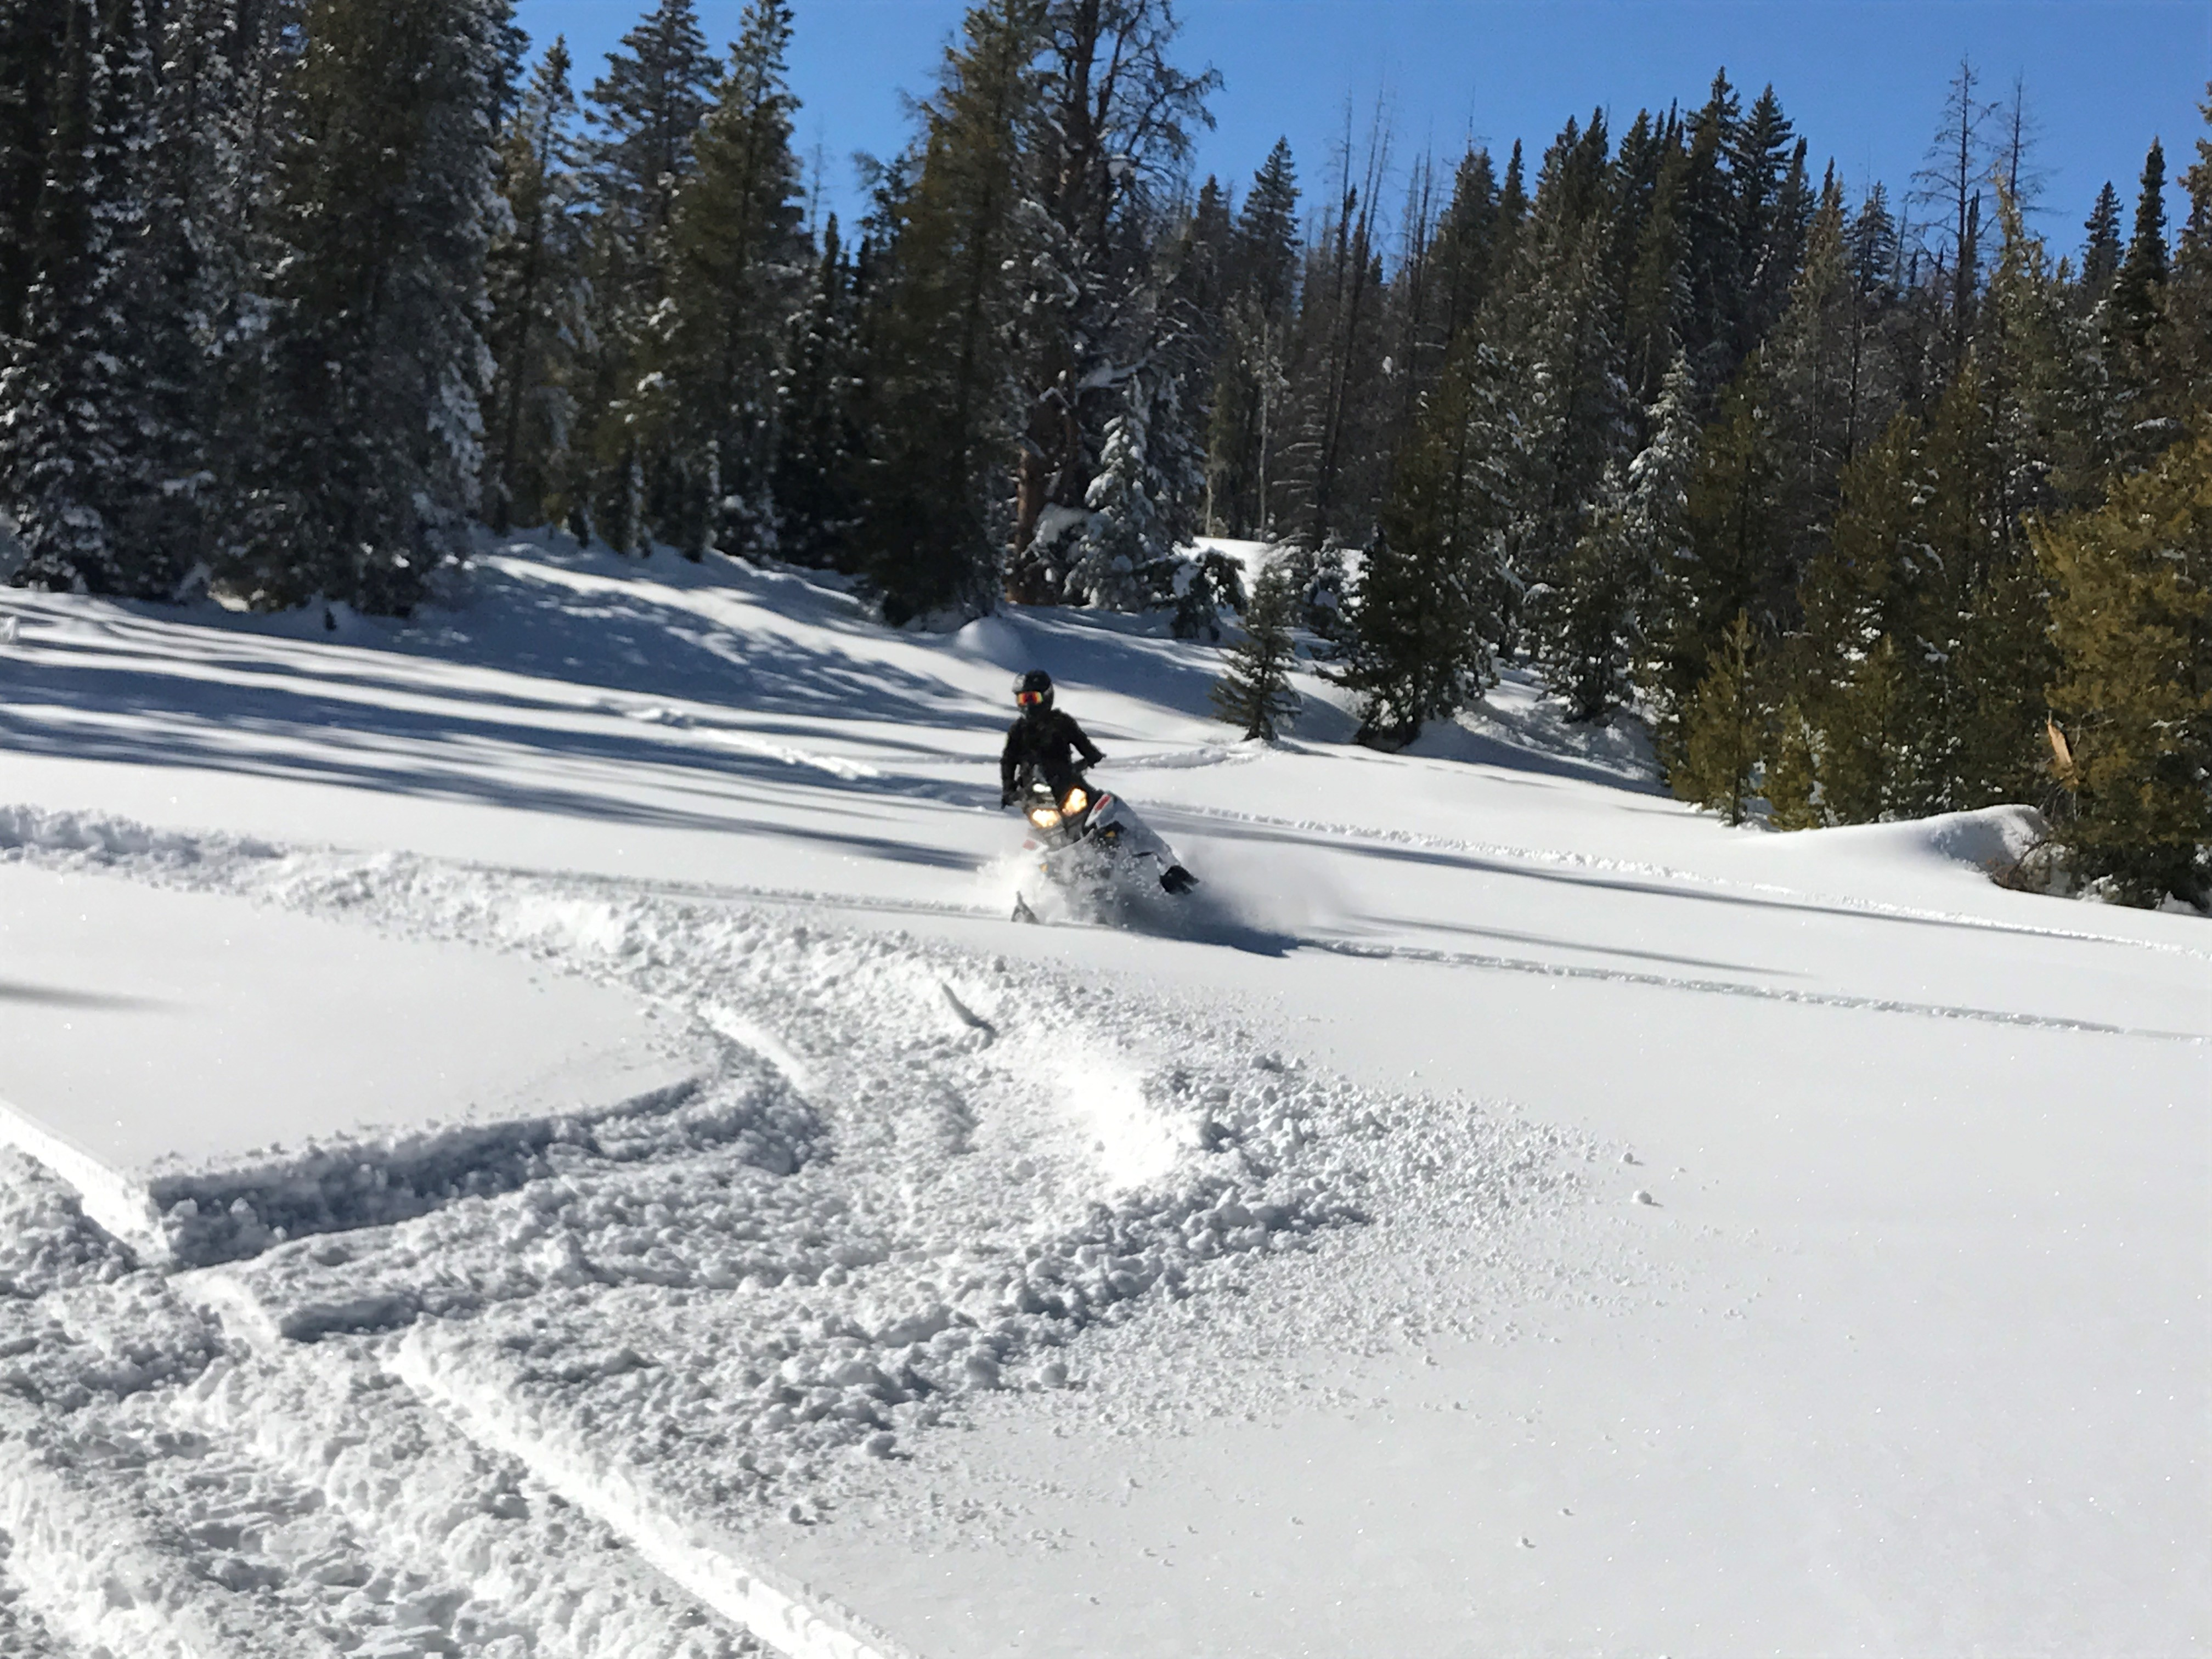 Hannah Nadeau on a snowmobile in the Sierra Madre mountains.